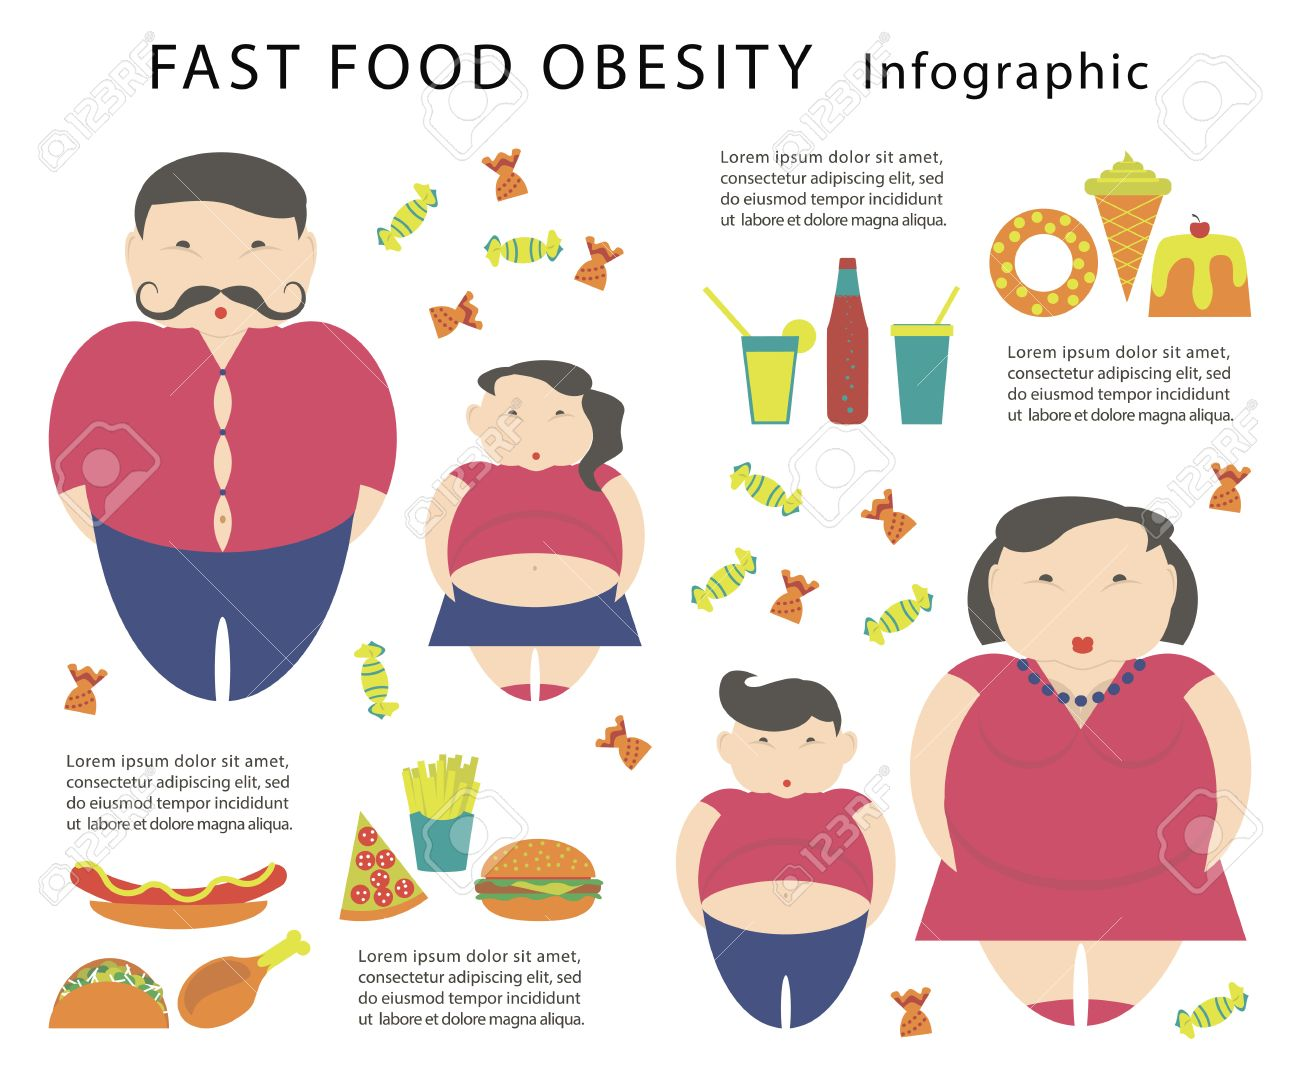 Obesity infographic template - junk fast food, childhood overweight elements, fat man, woman and kids. Diet and lifestyle data visualization concept poster. - 66828295